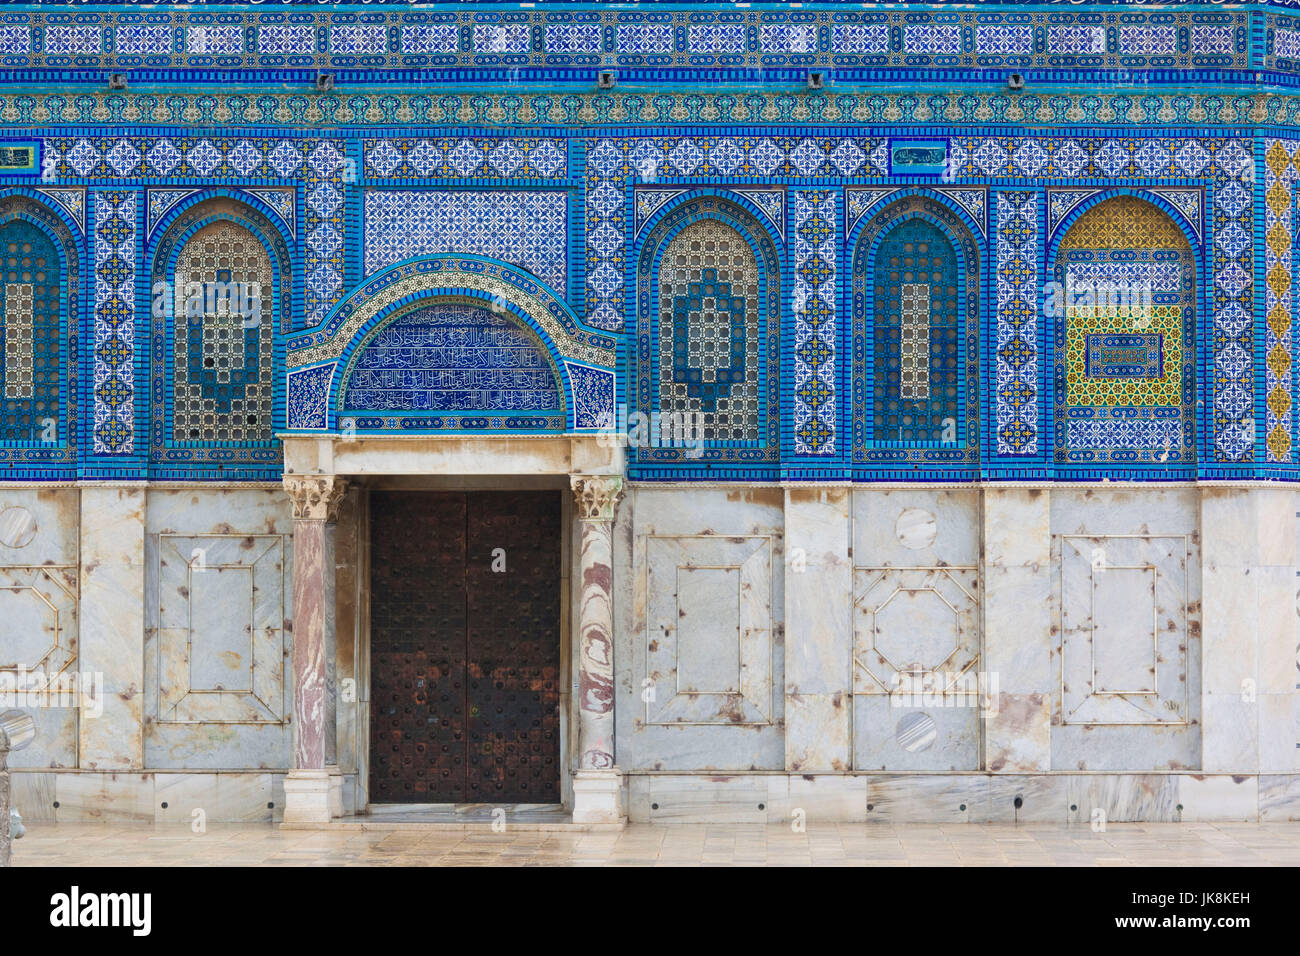 Israel, Jerusalem, Temple Mount, Dome of the Rock Stock Photo